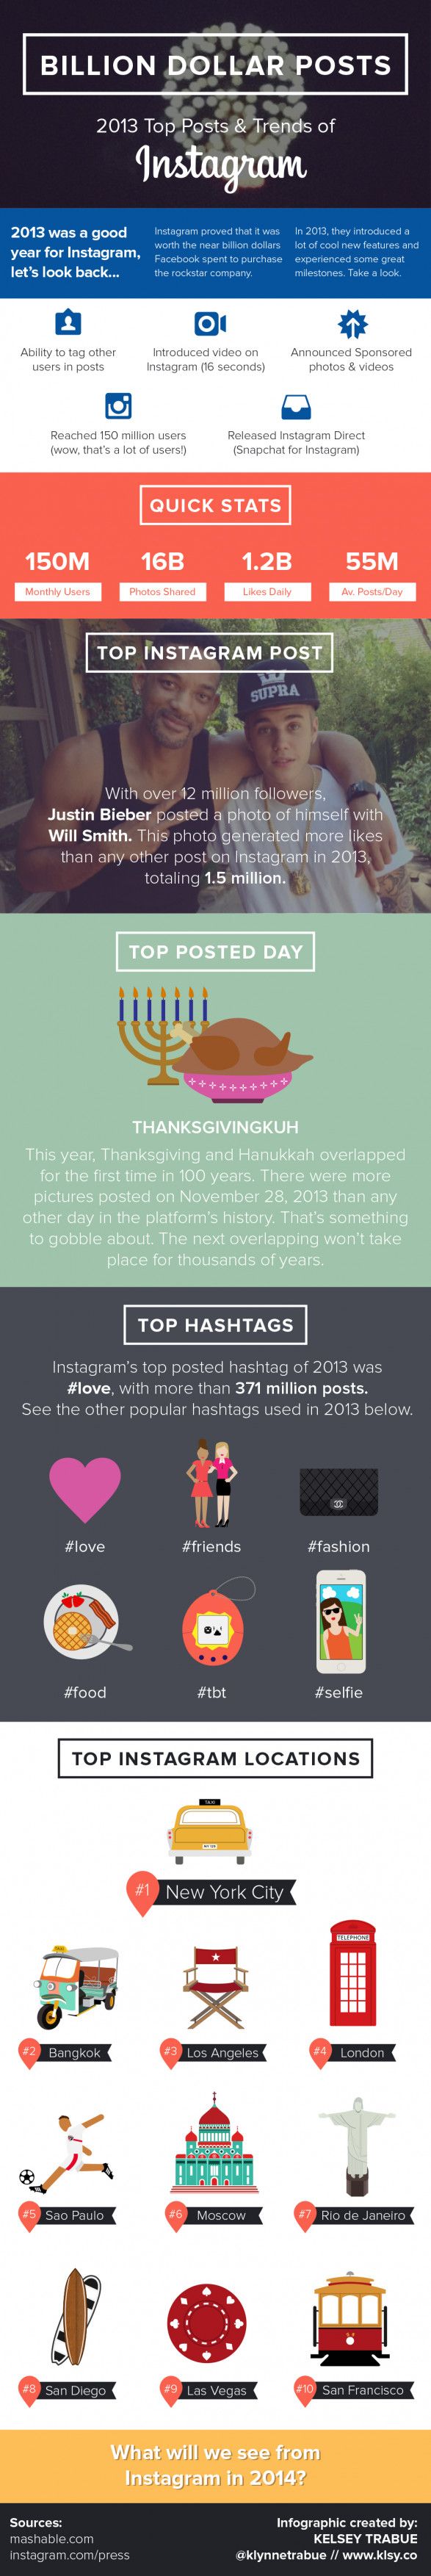 Billion Dollar Posts: 2013 Instagram Top Posts & Trends